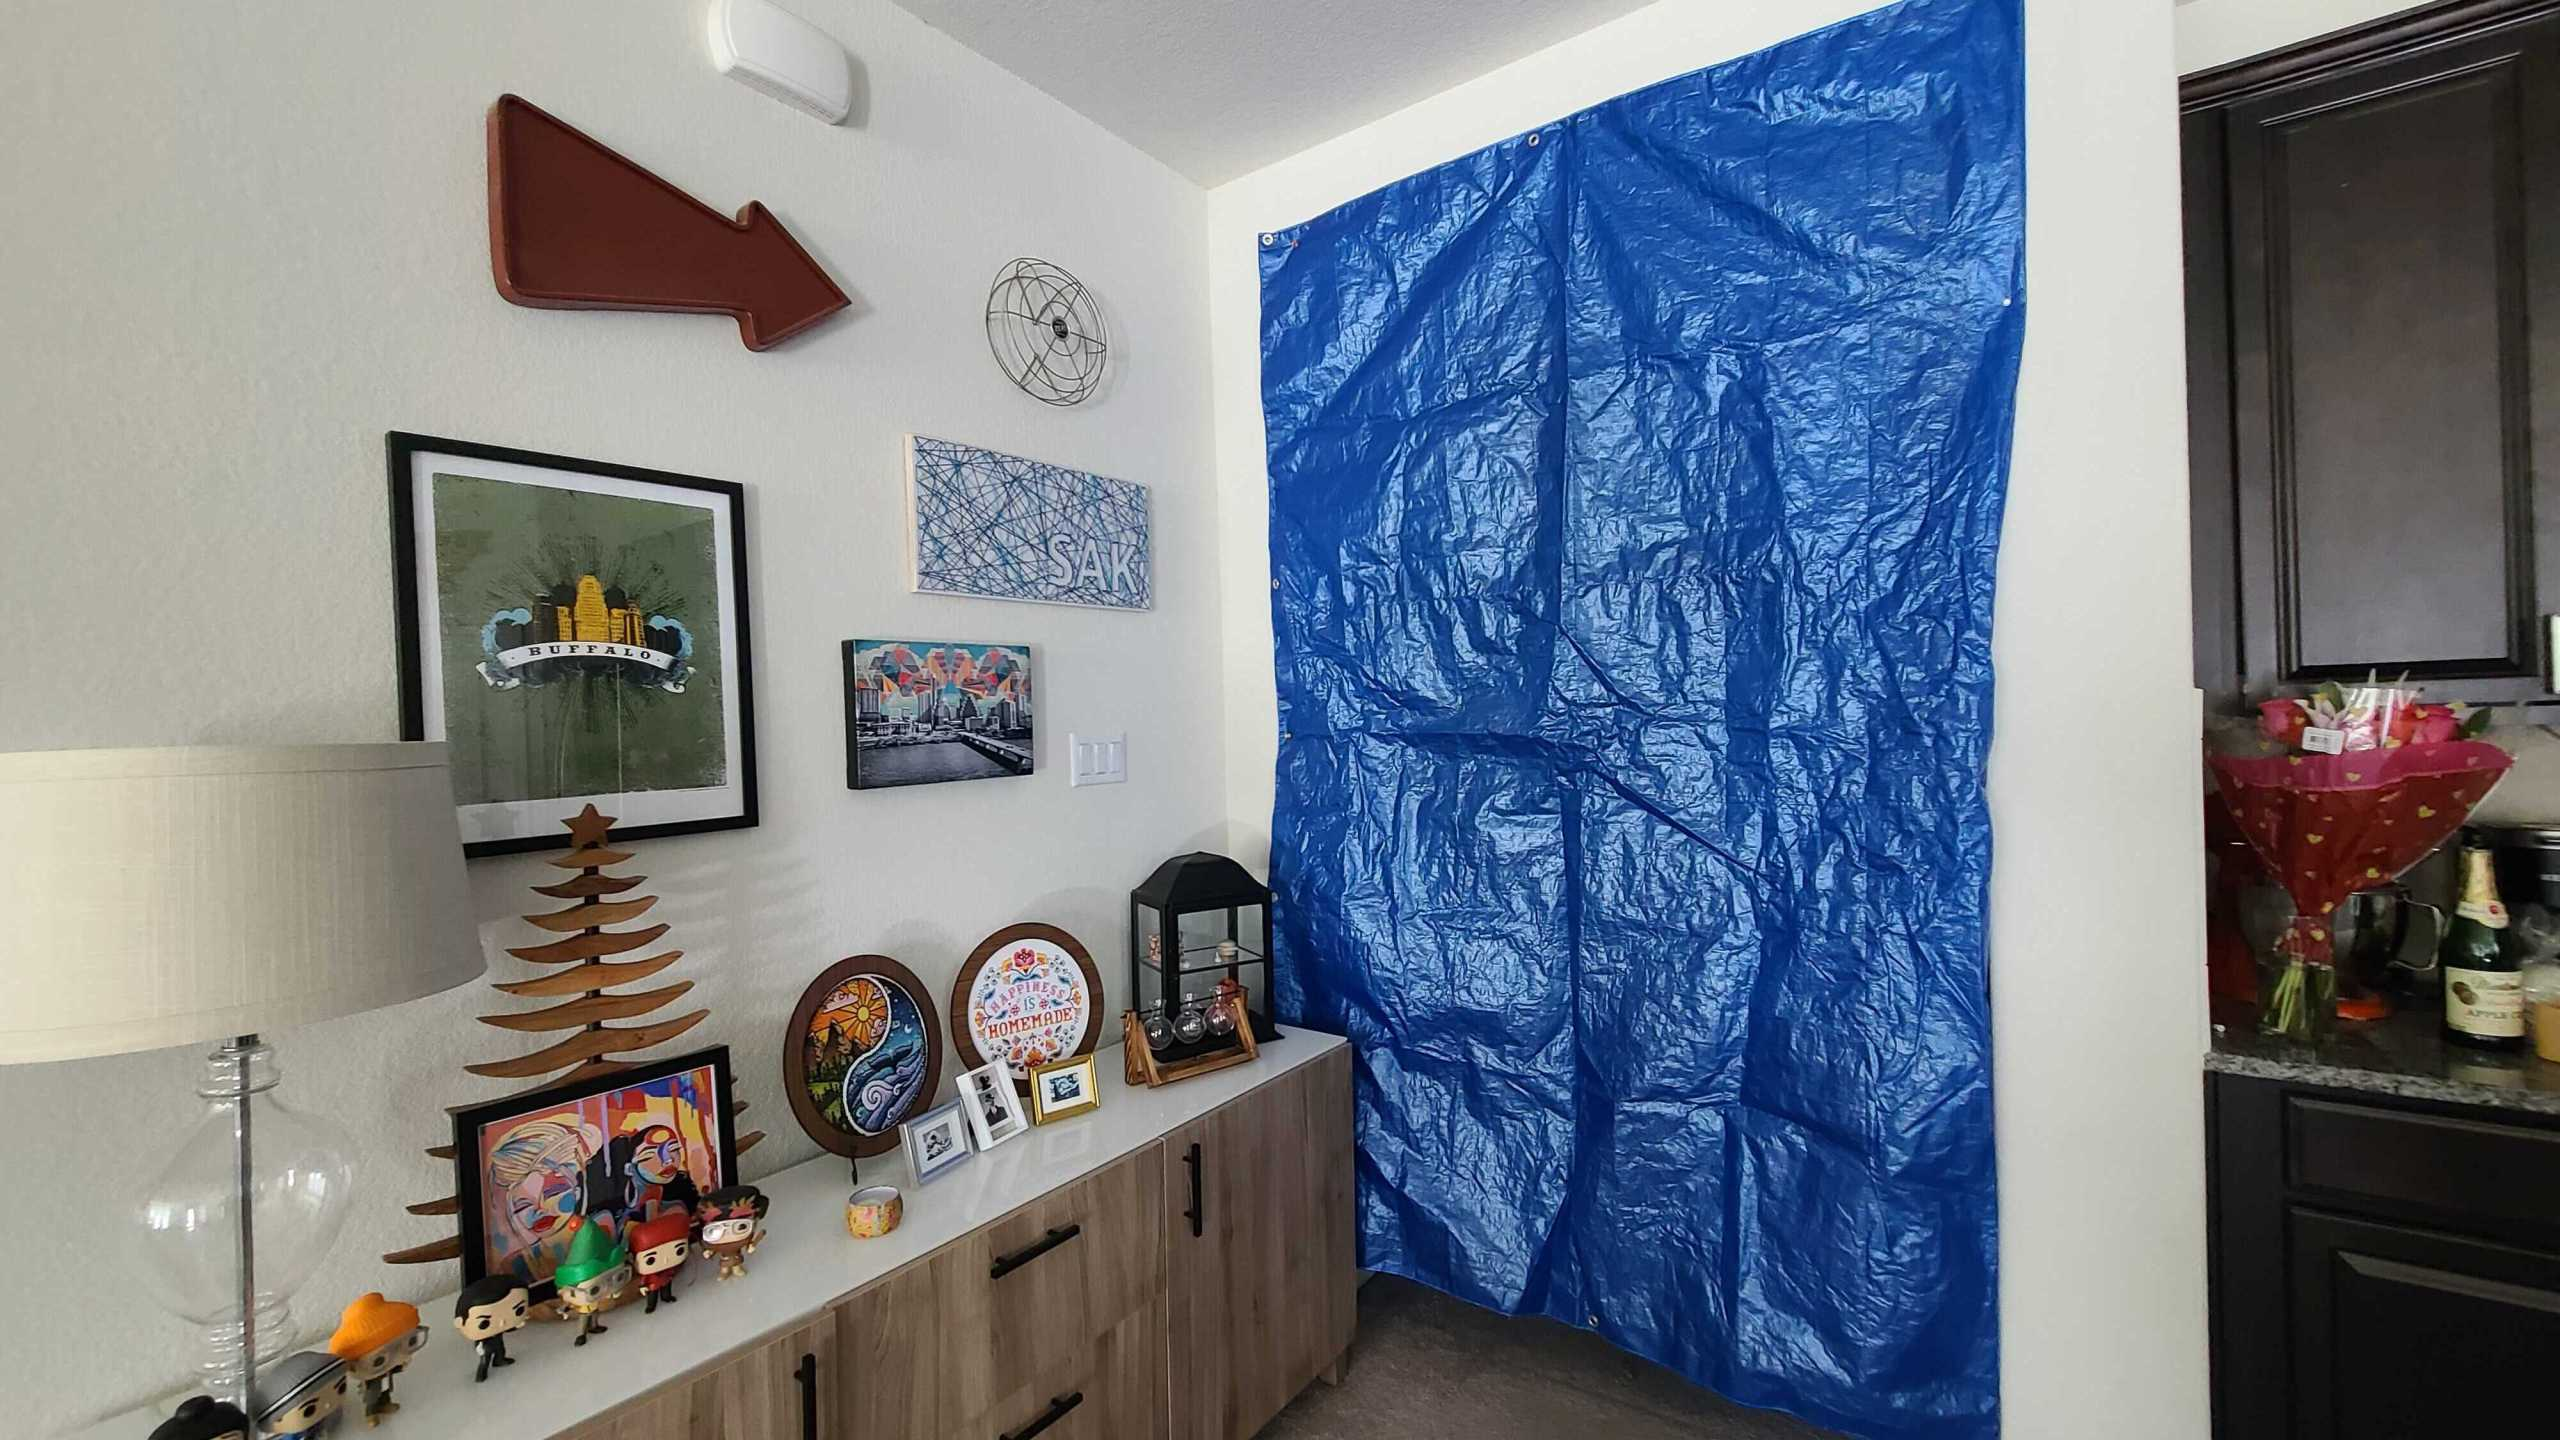 One way to keep heat in is to cover up windows and doorways in the room where you're hunkering down (KXAN Photo/Andrew Choat)